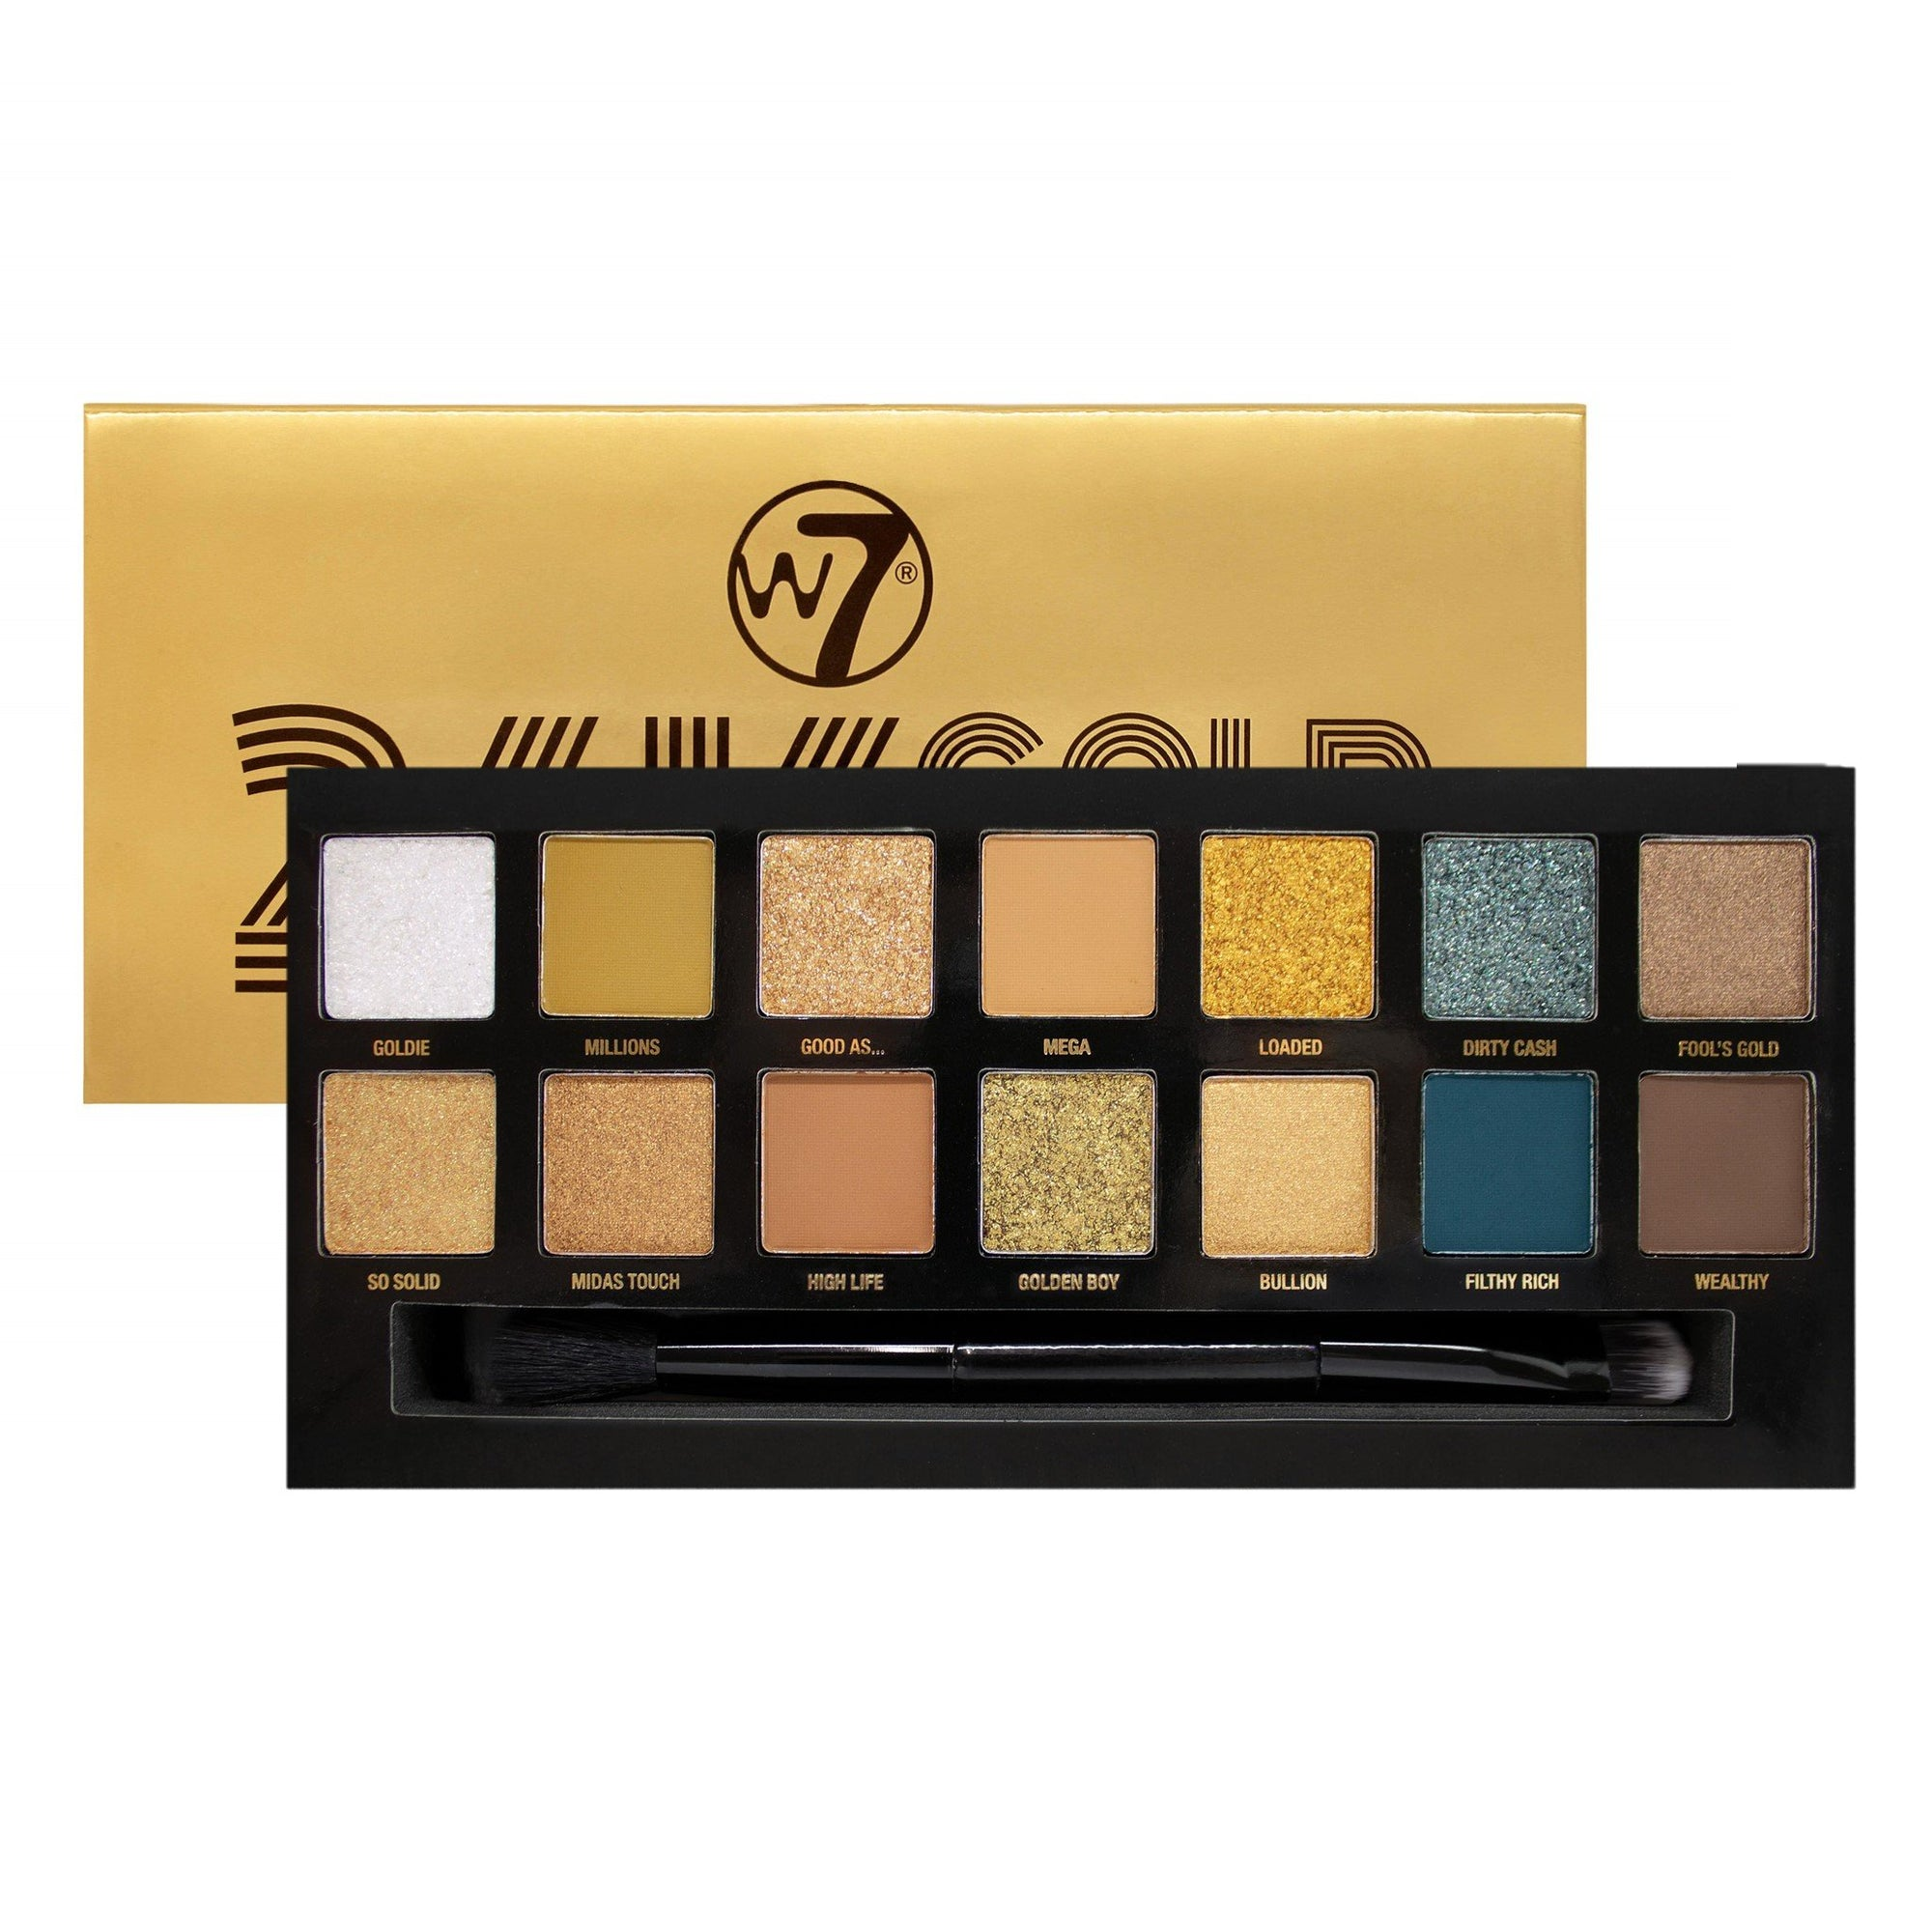 W7 24K Gold Rush Eyeshadow Palette